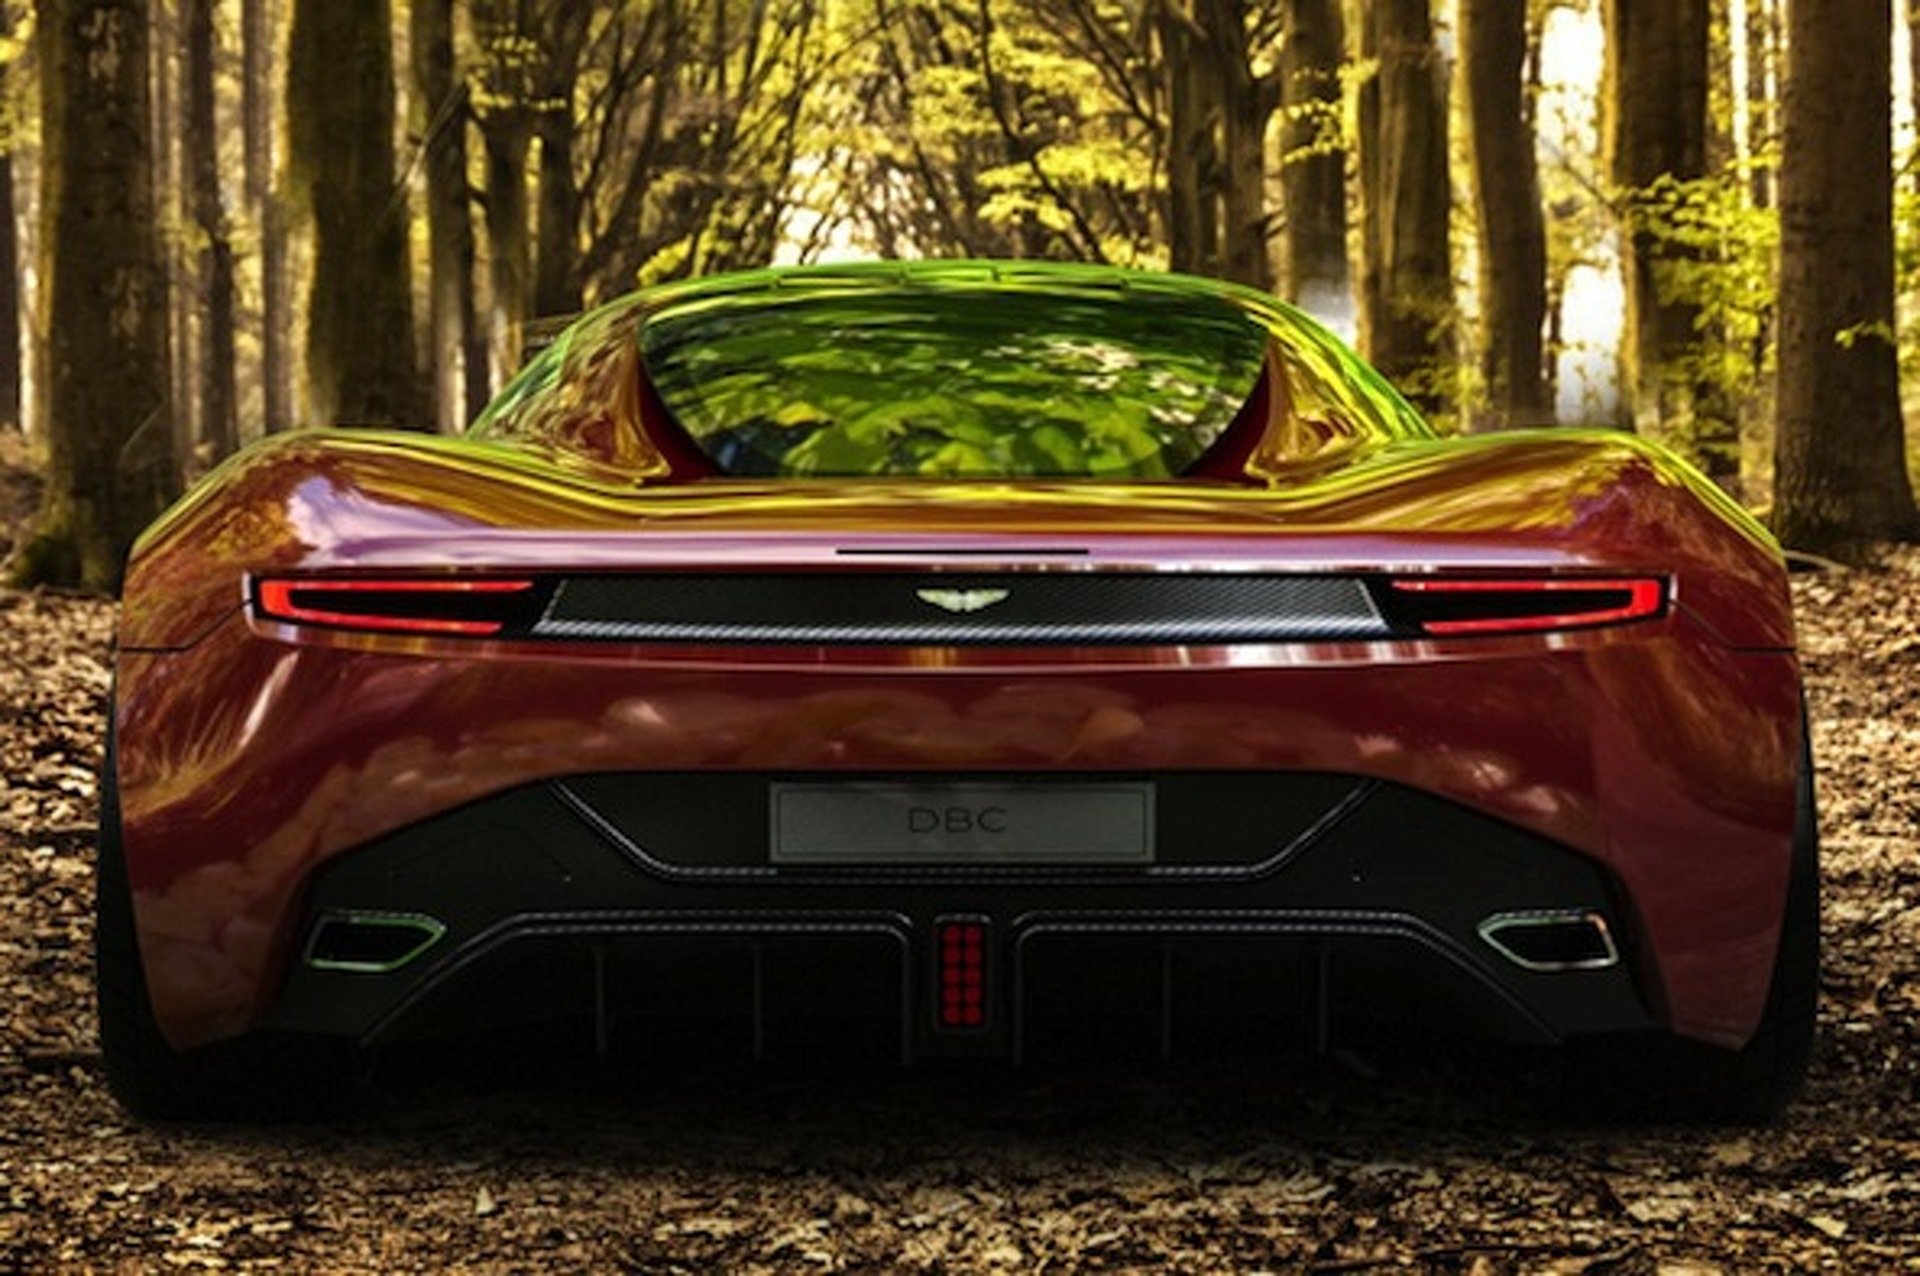 Aston Martin Dbc Concept The British Supercar We Ve Been Longing For